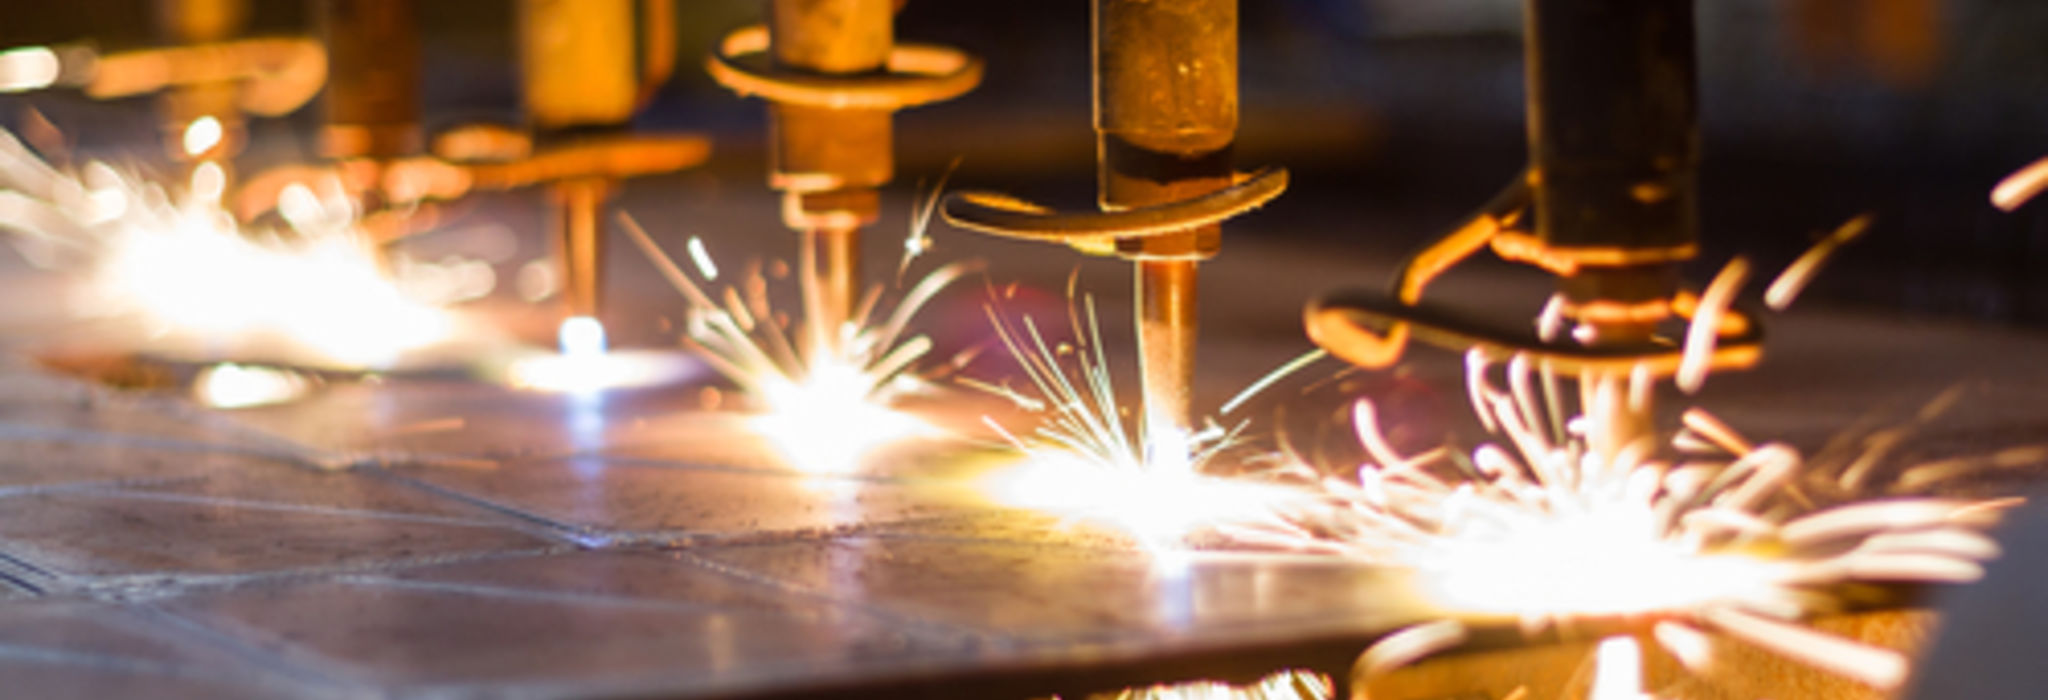 Production - cutting metals